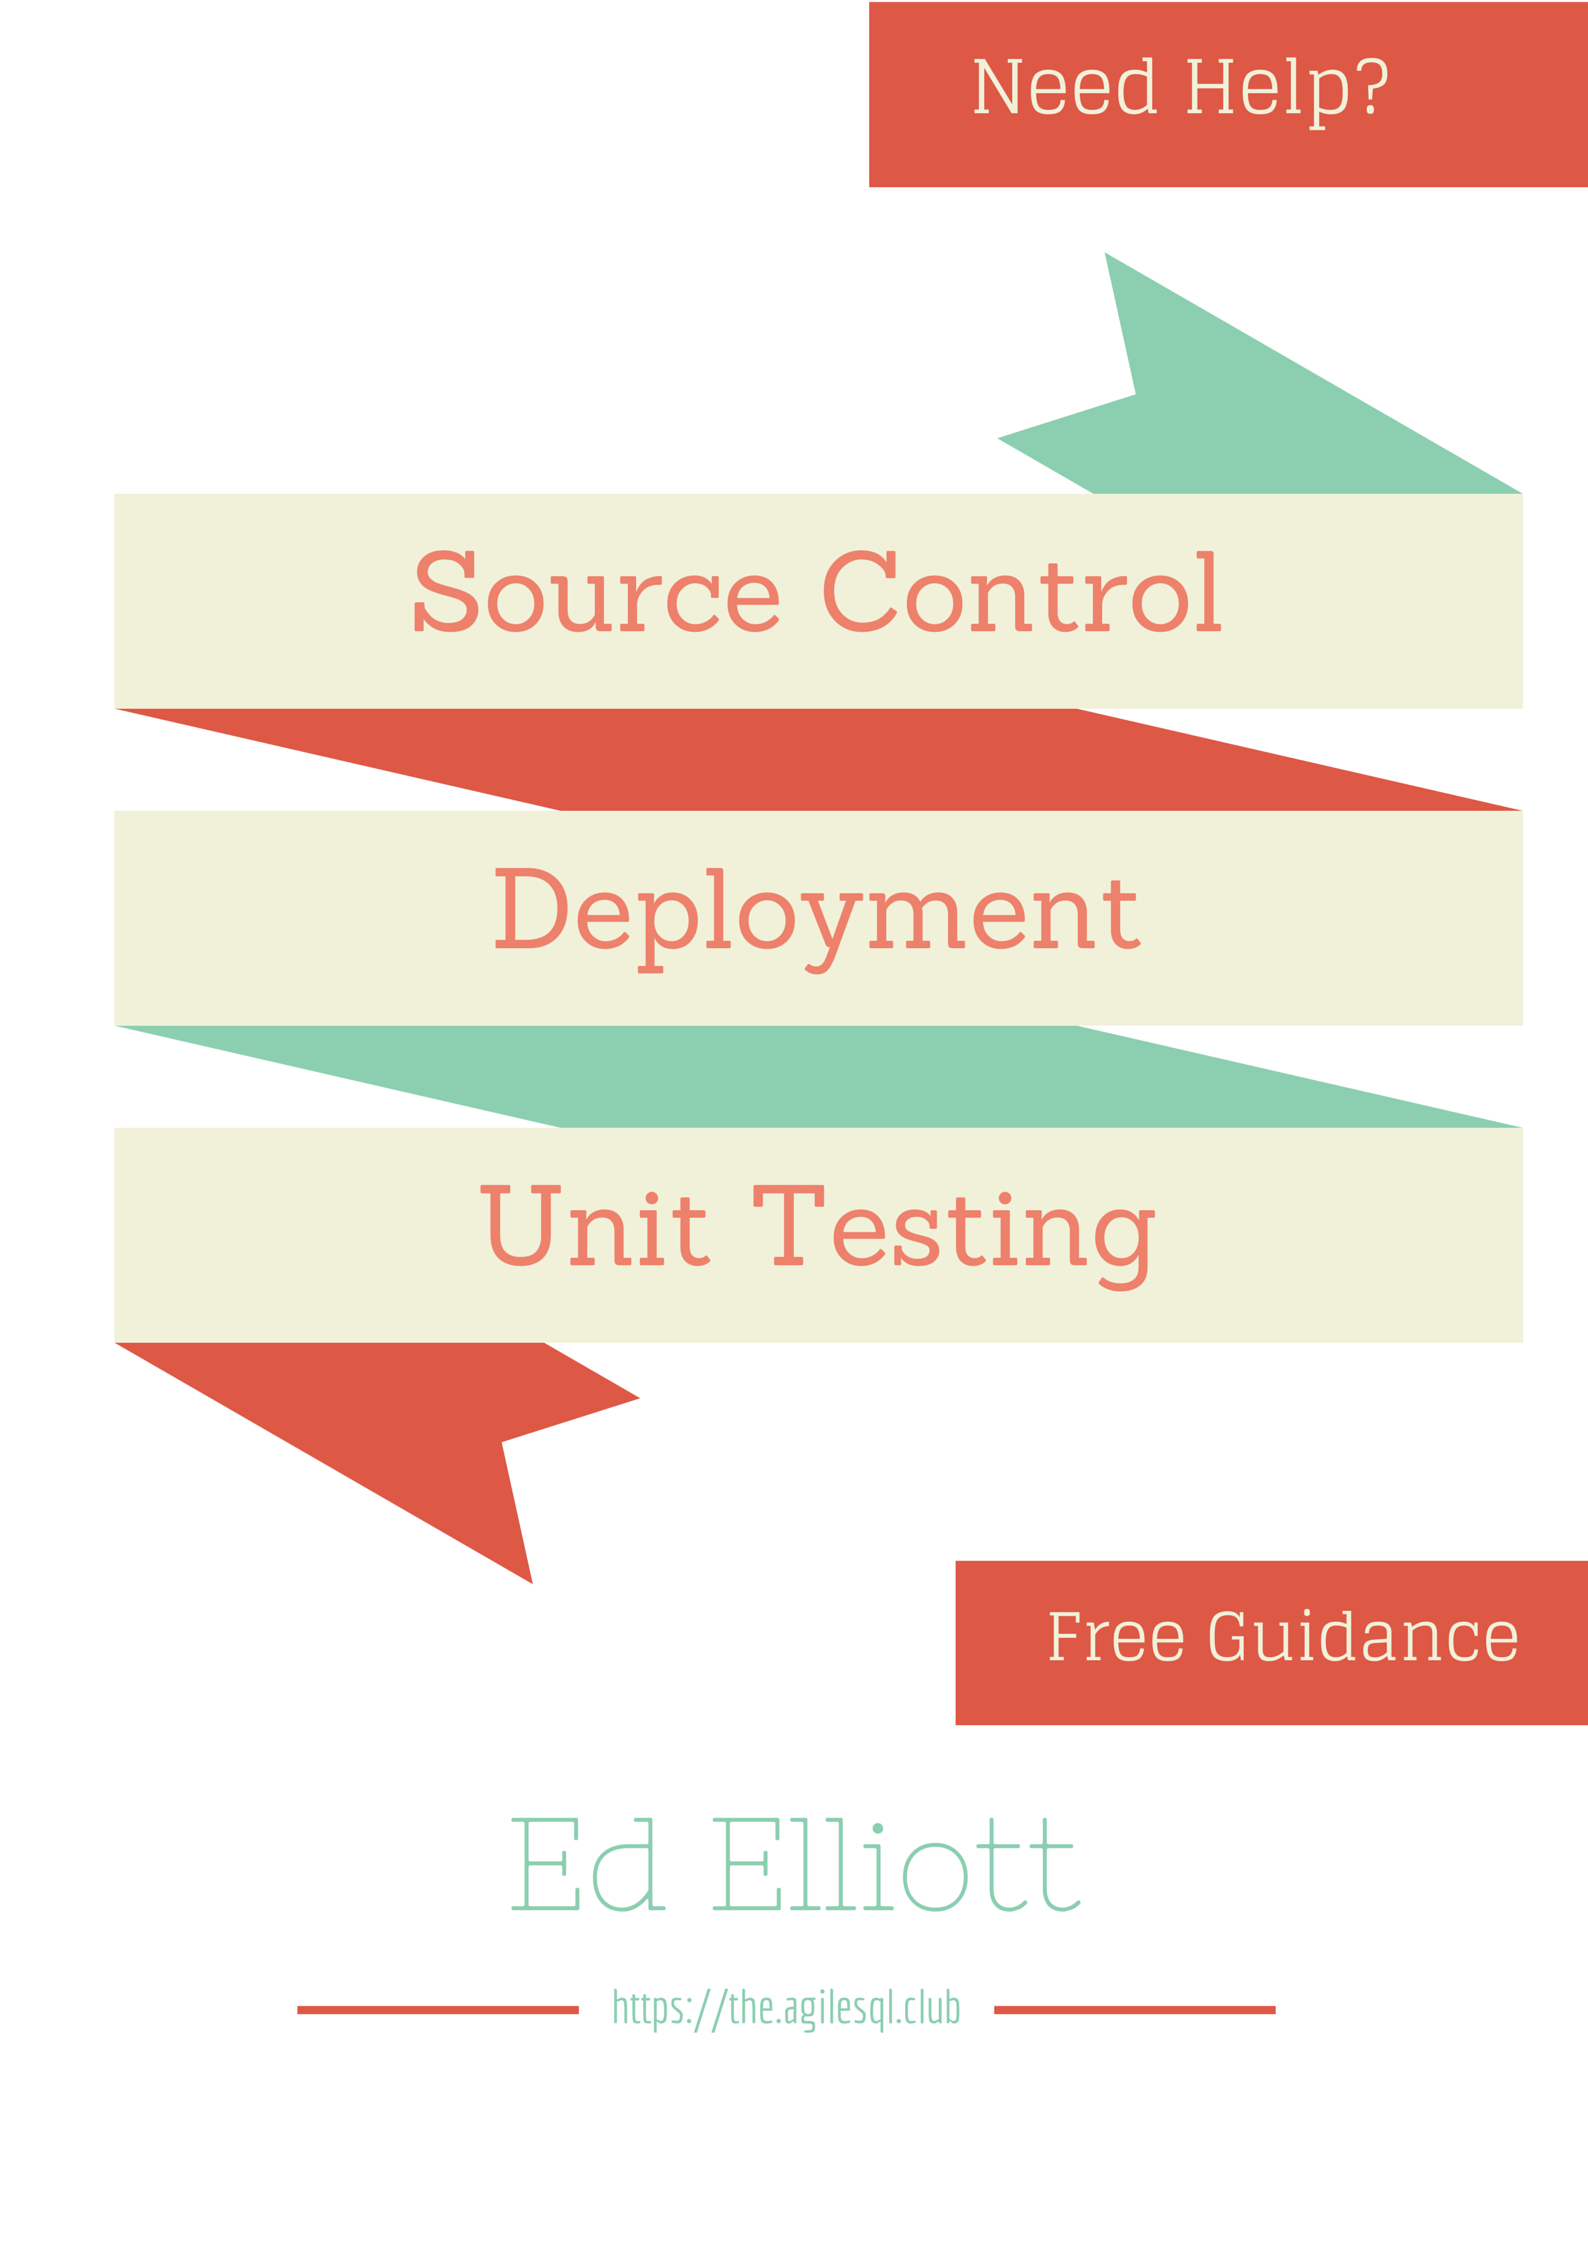 Free Help setting up CI, Unit Testing, Deployments etc for Sql Server databases